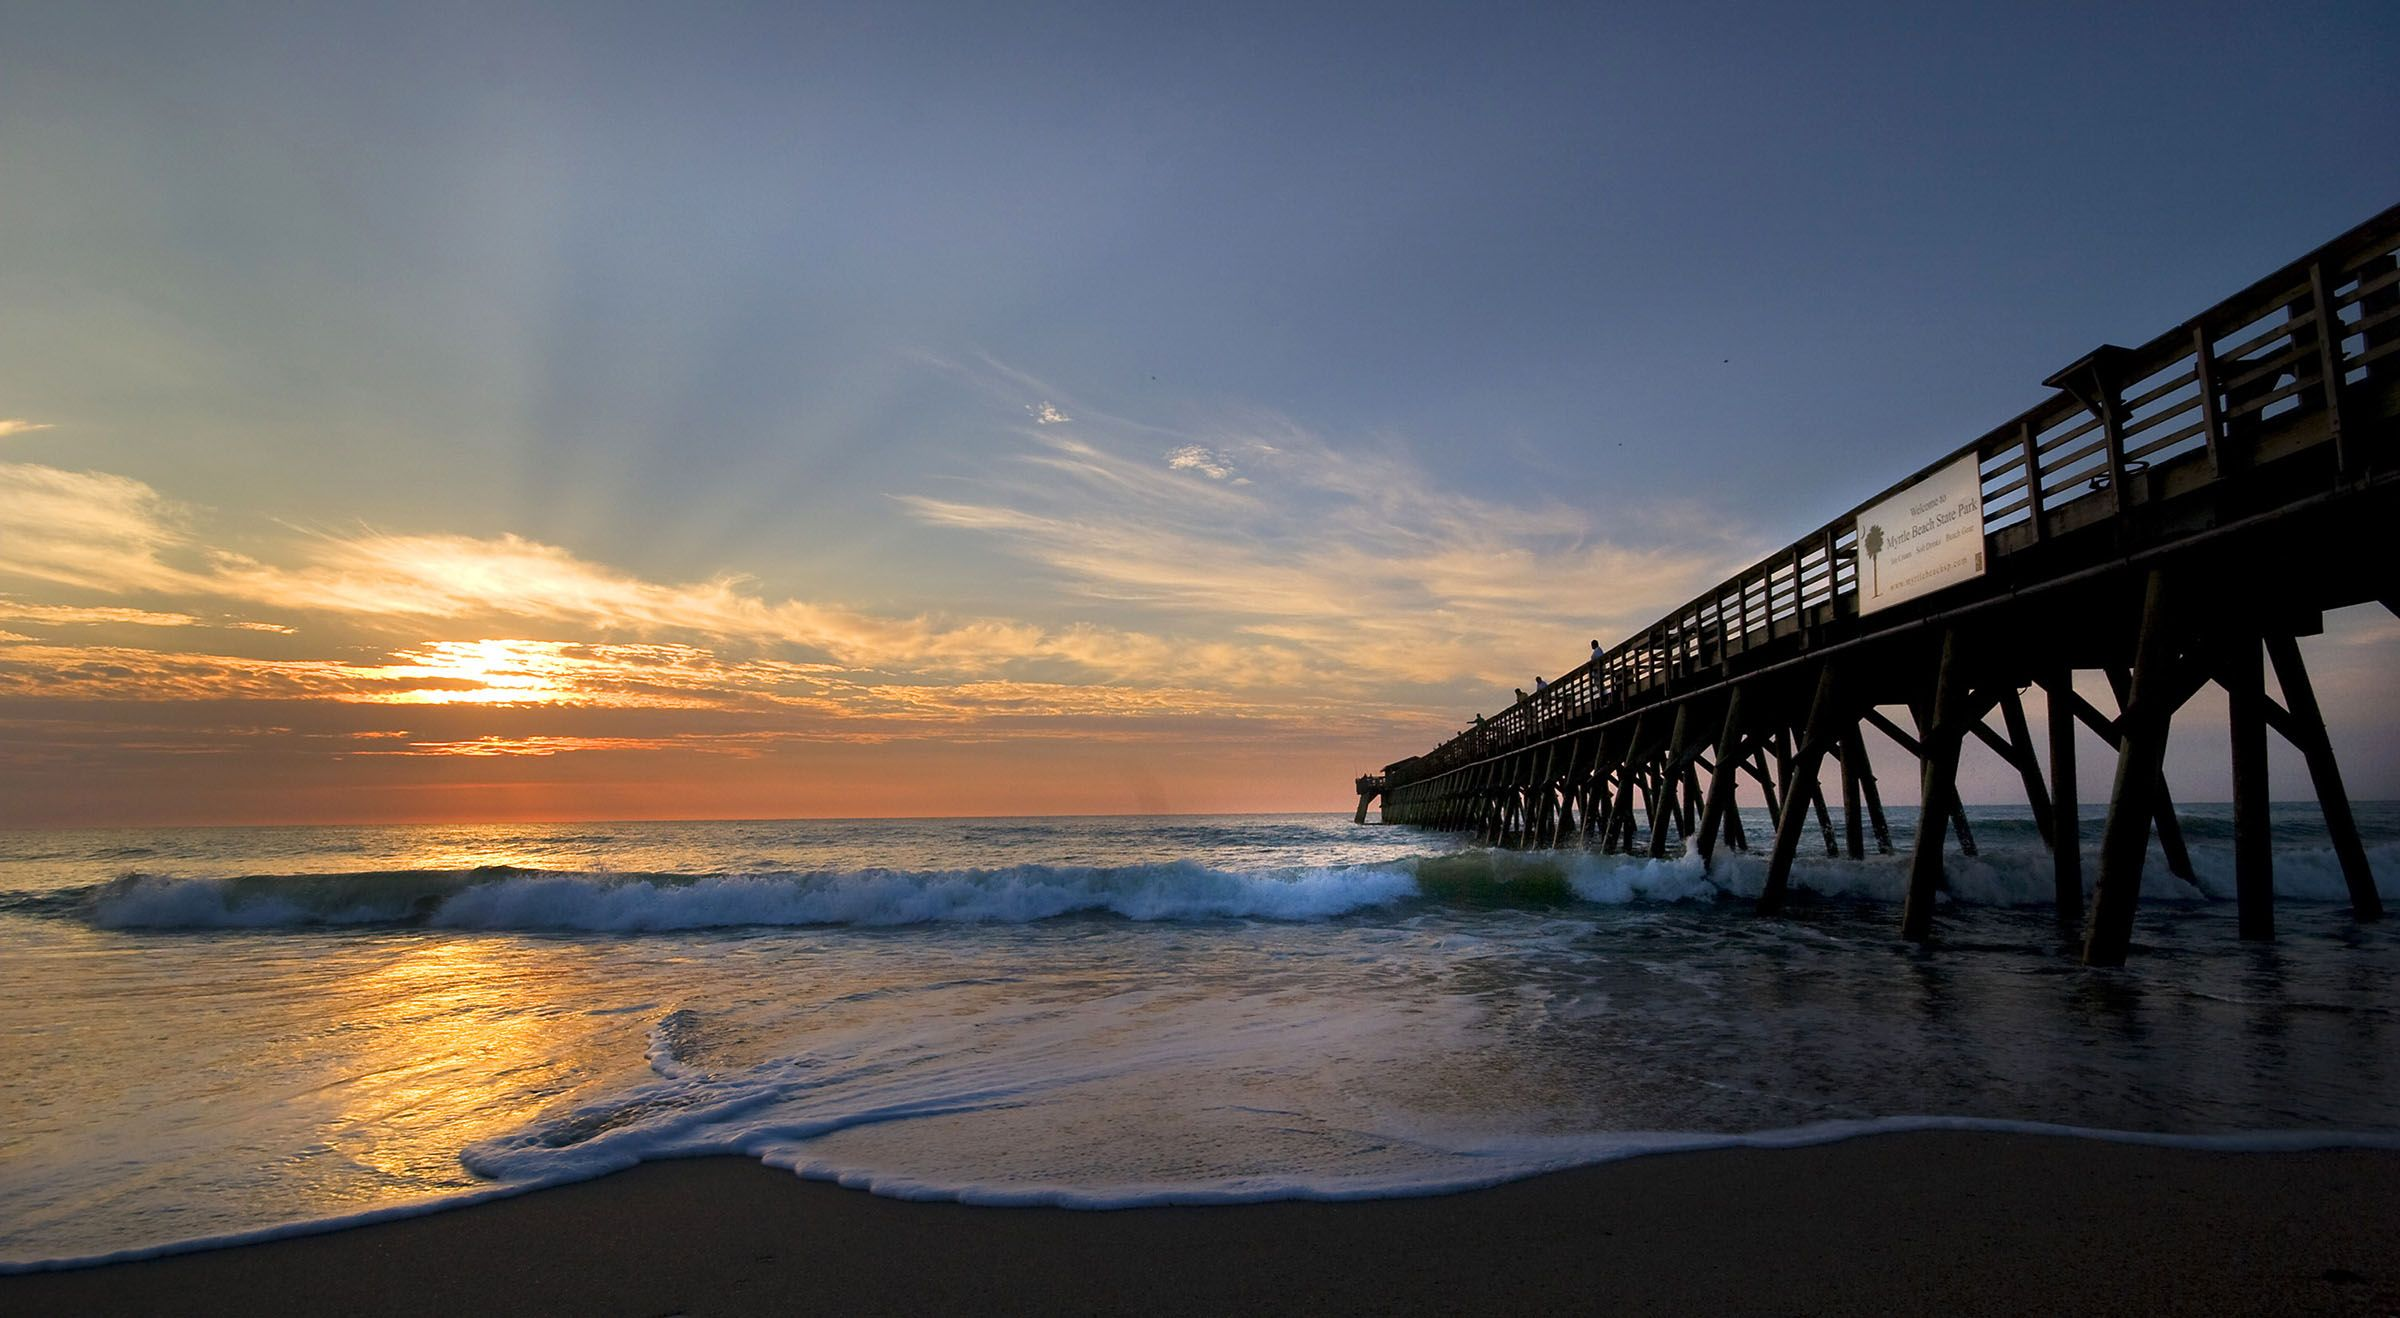 Myrtle Beach State Park. Taken by Perry Baker, Courtesy of